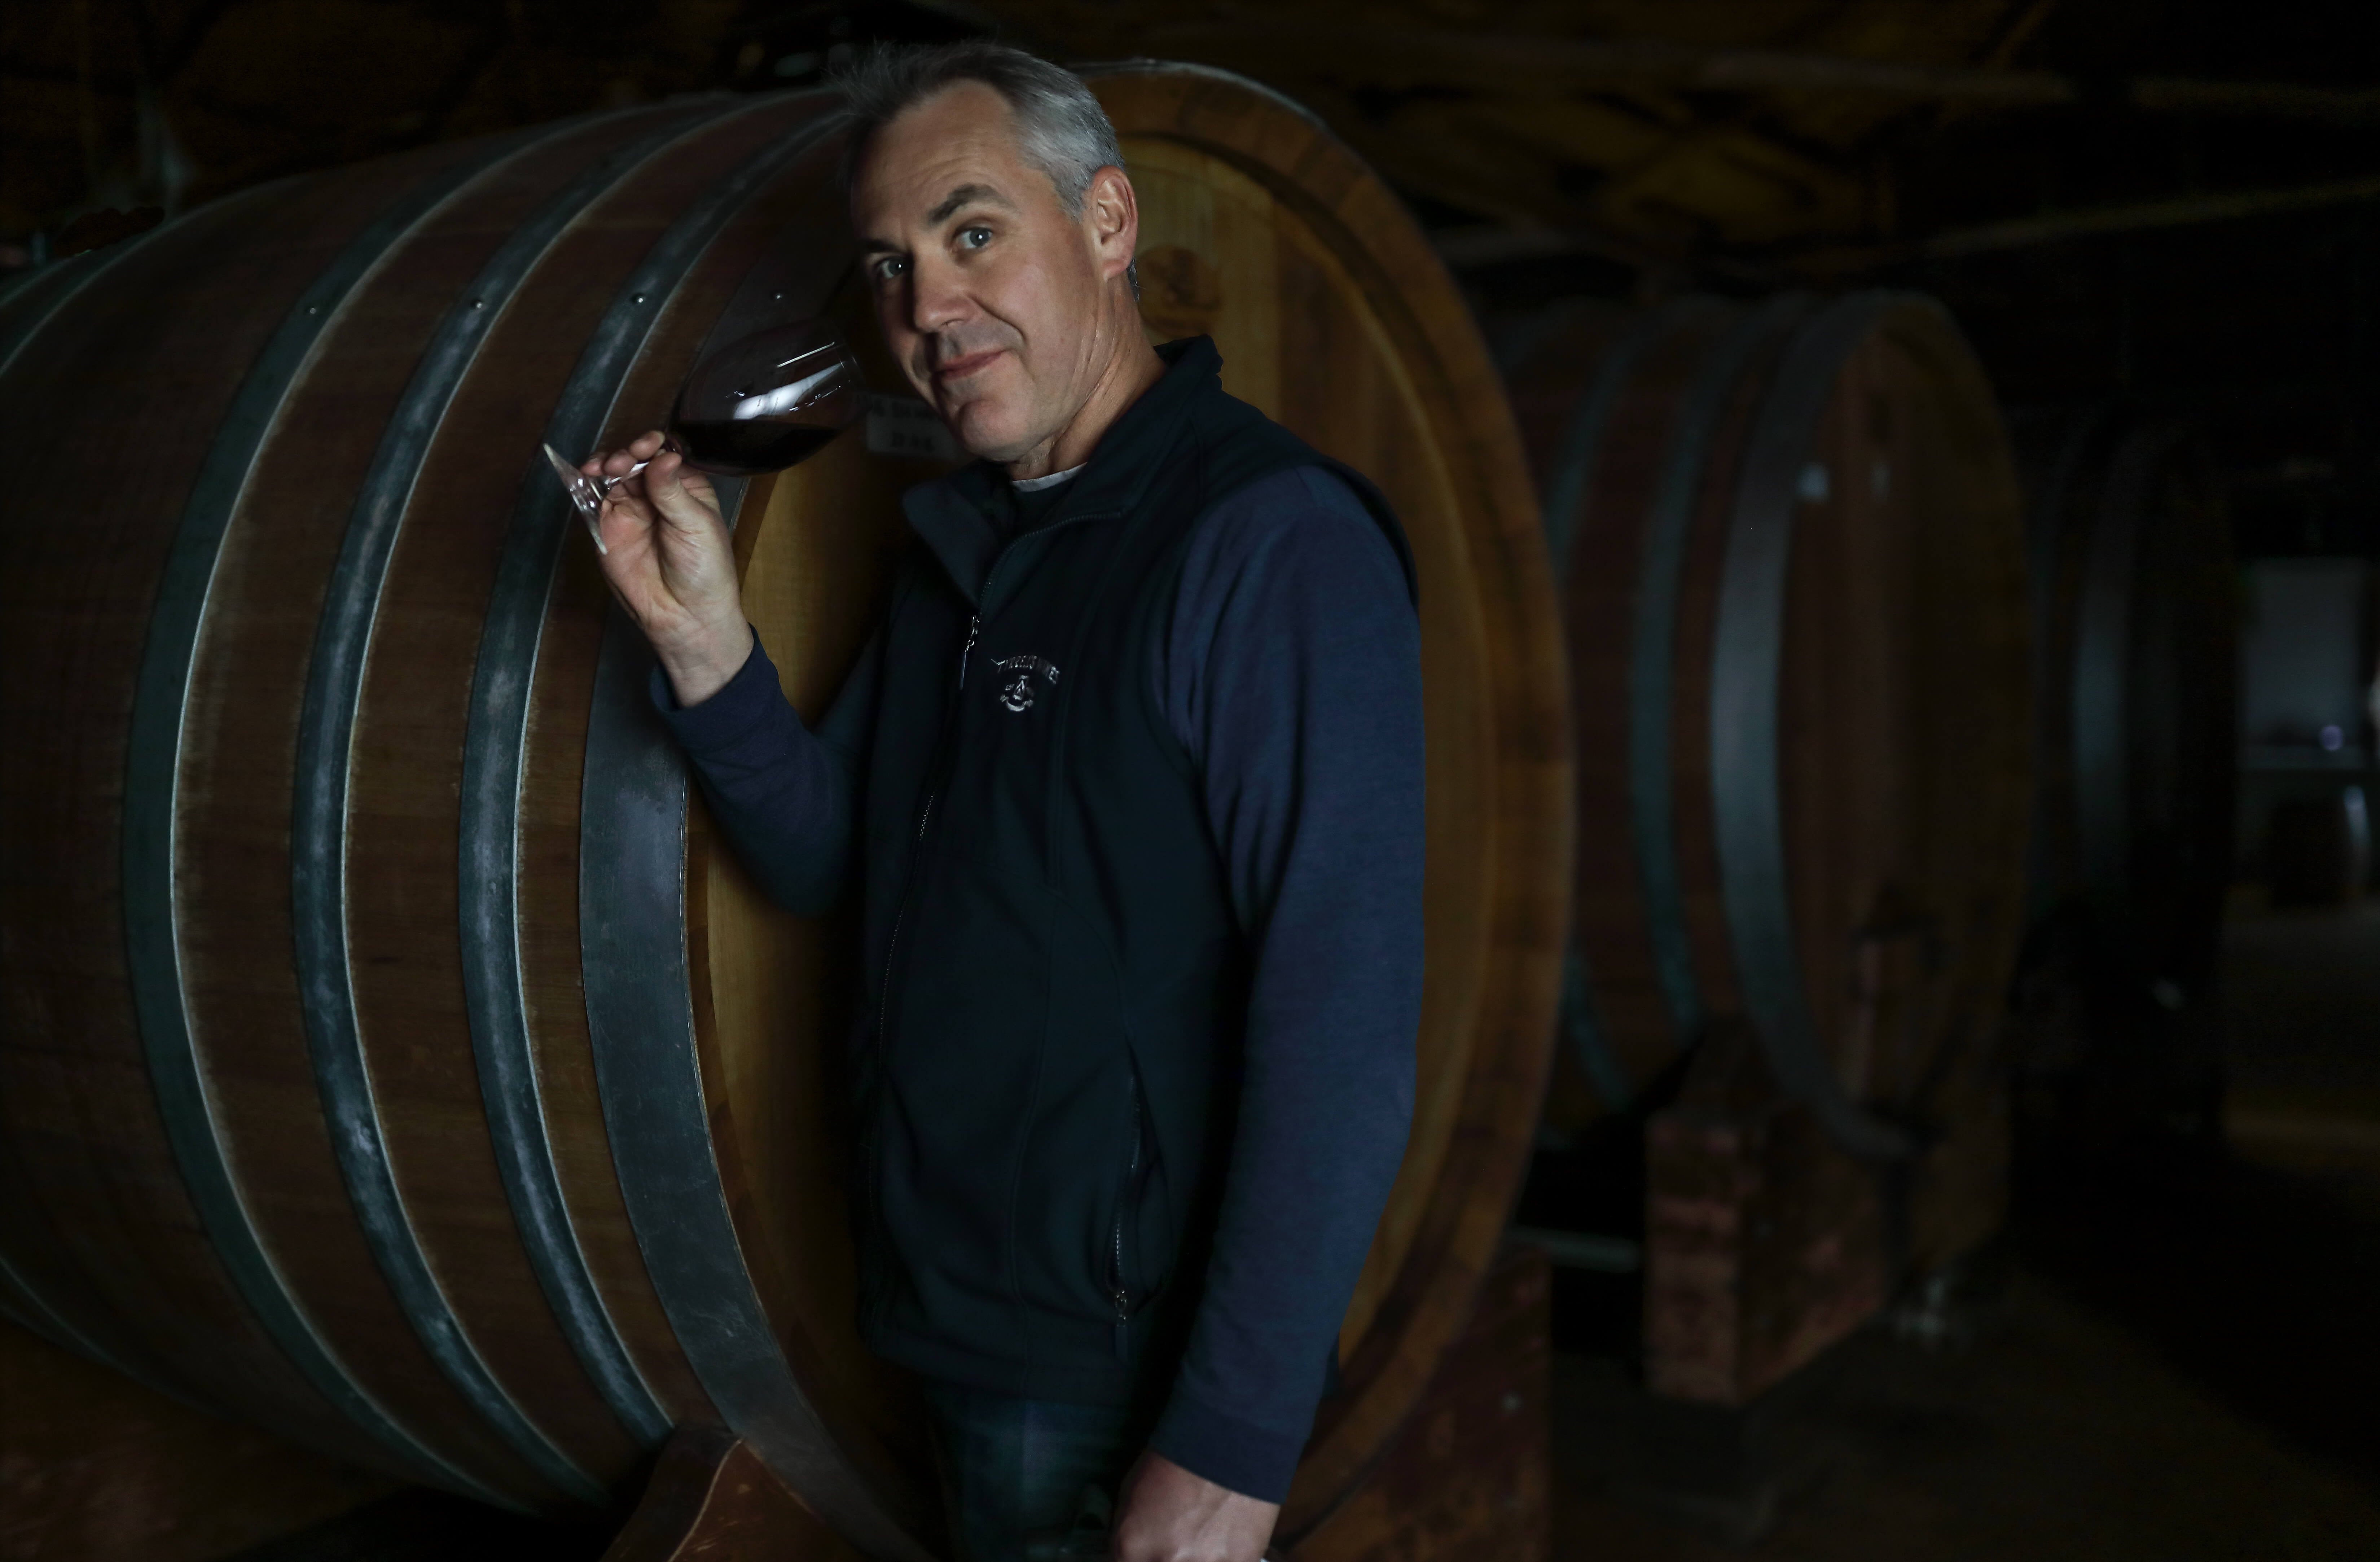 Portrait of winemaker in low light.